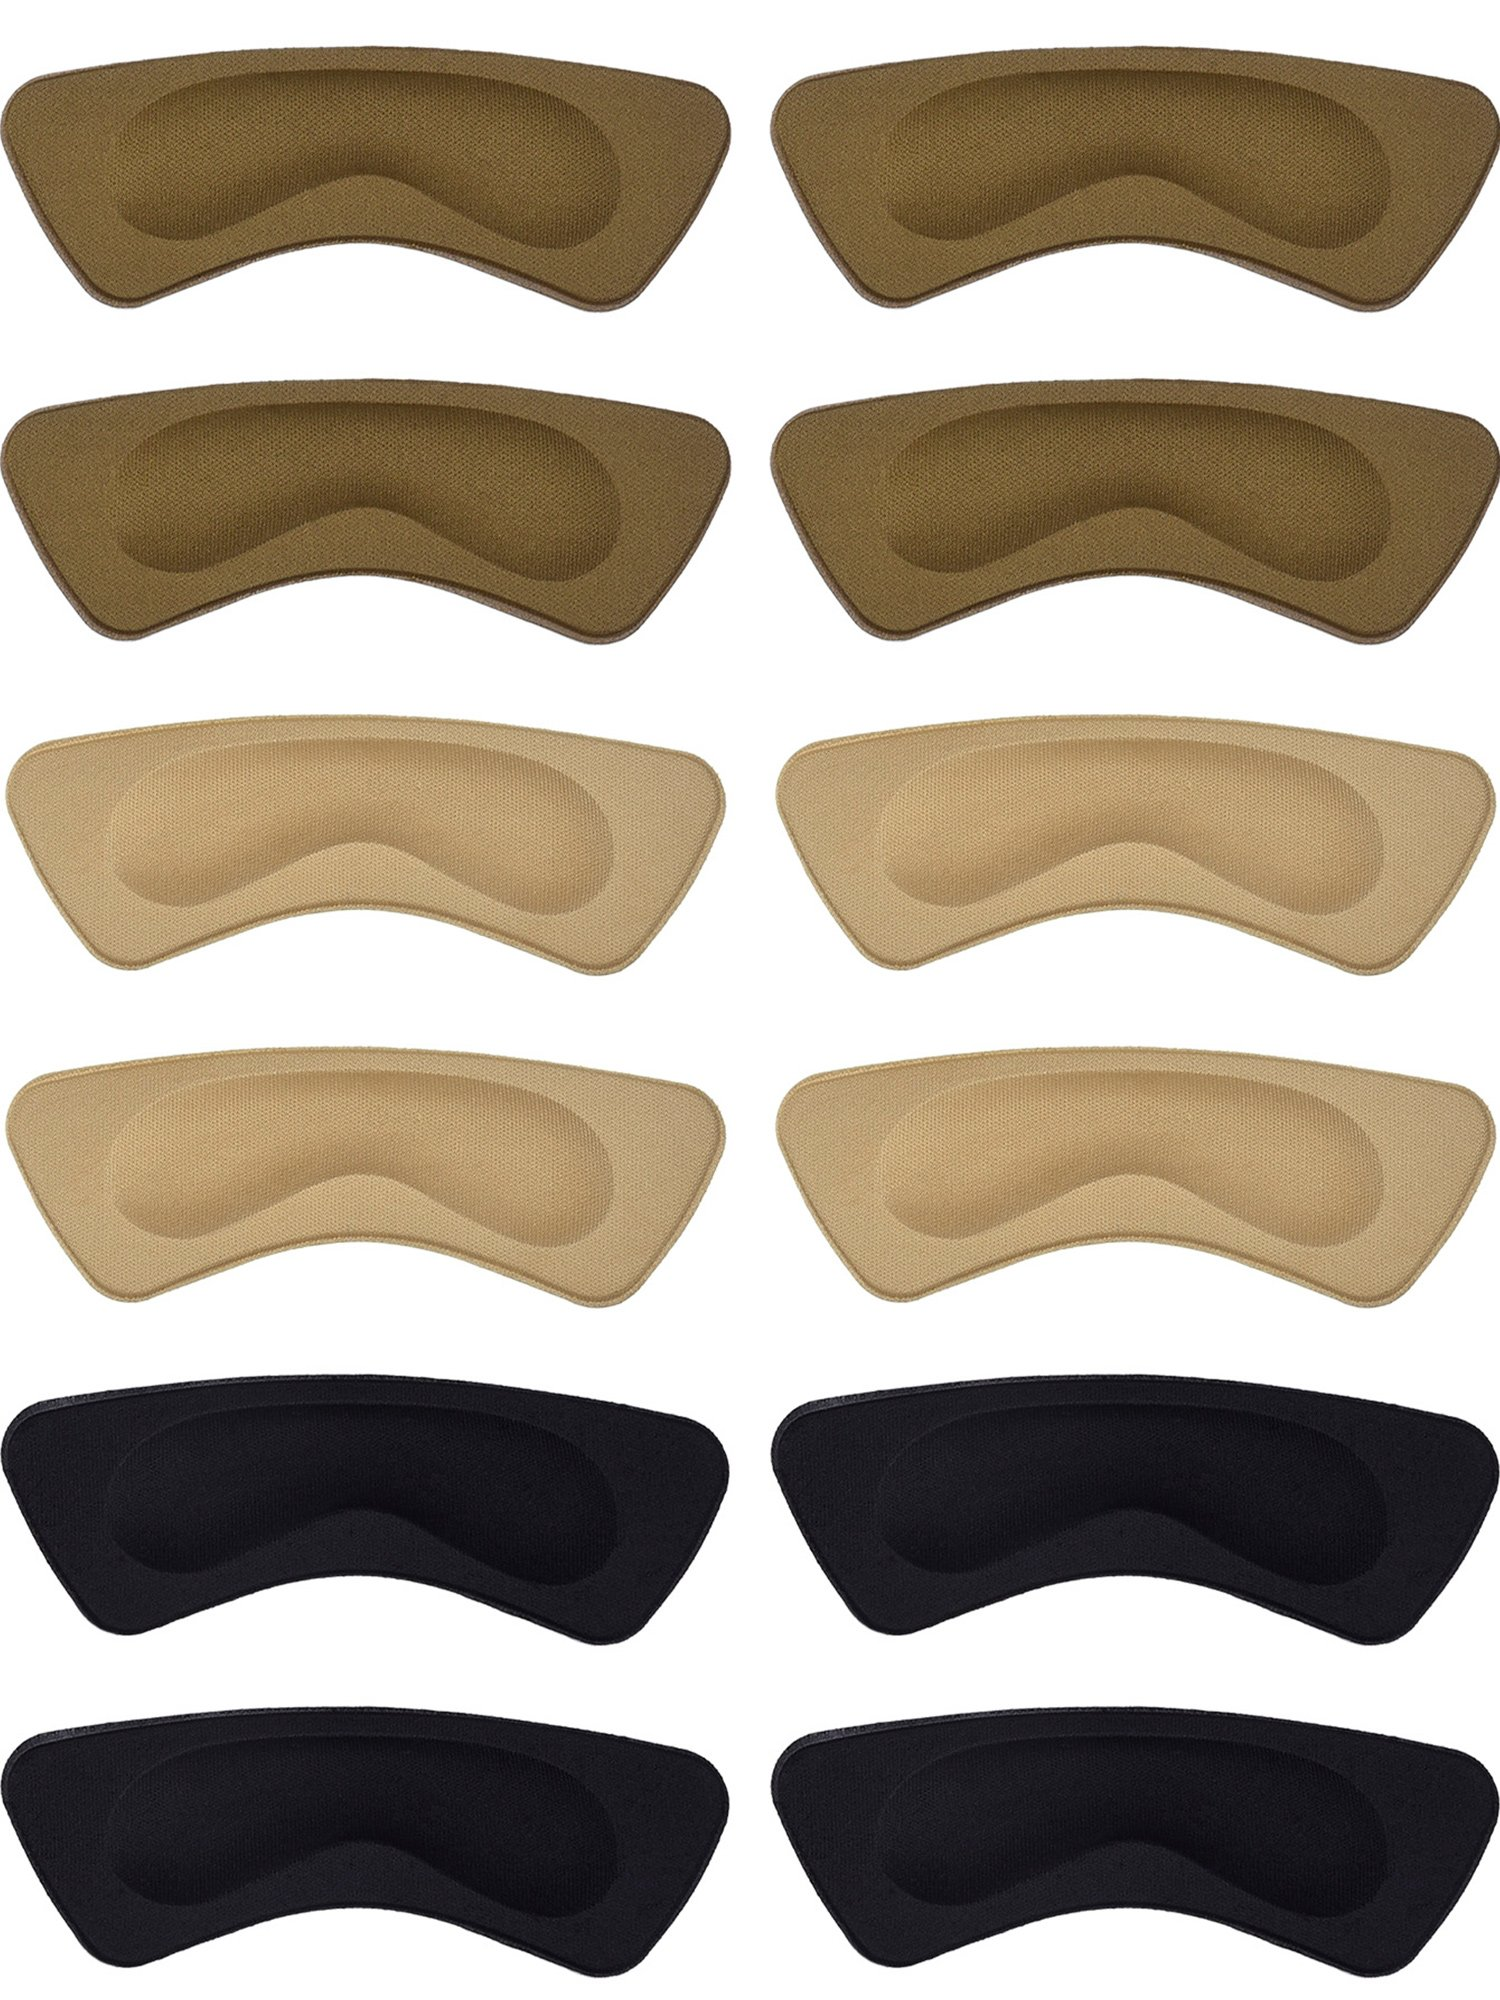 Hotop 6 Pairs Heel Cushion Pads Heel Shoe Grips Liner Self-Adhesive Shoe Insoles Foot Care Protector (Multicolor)